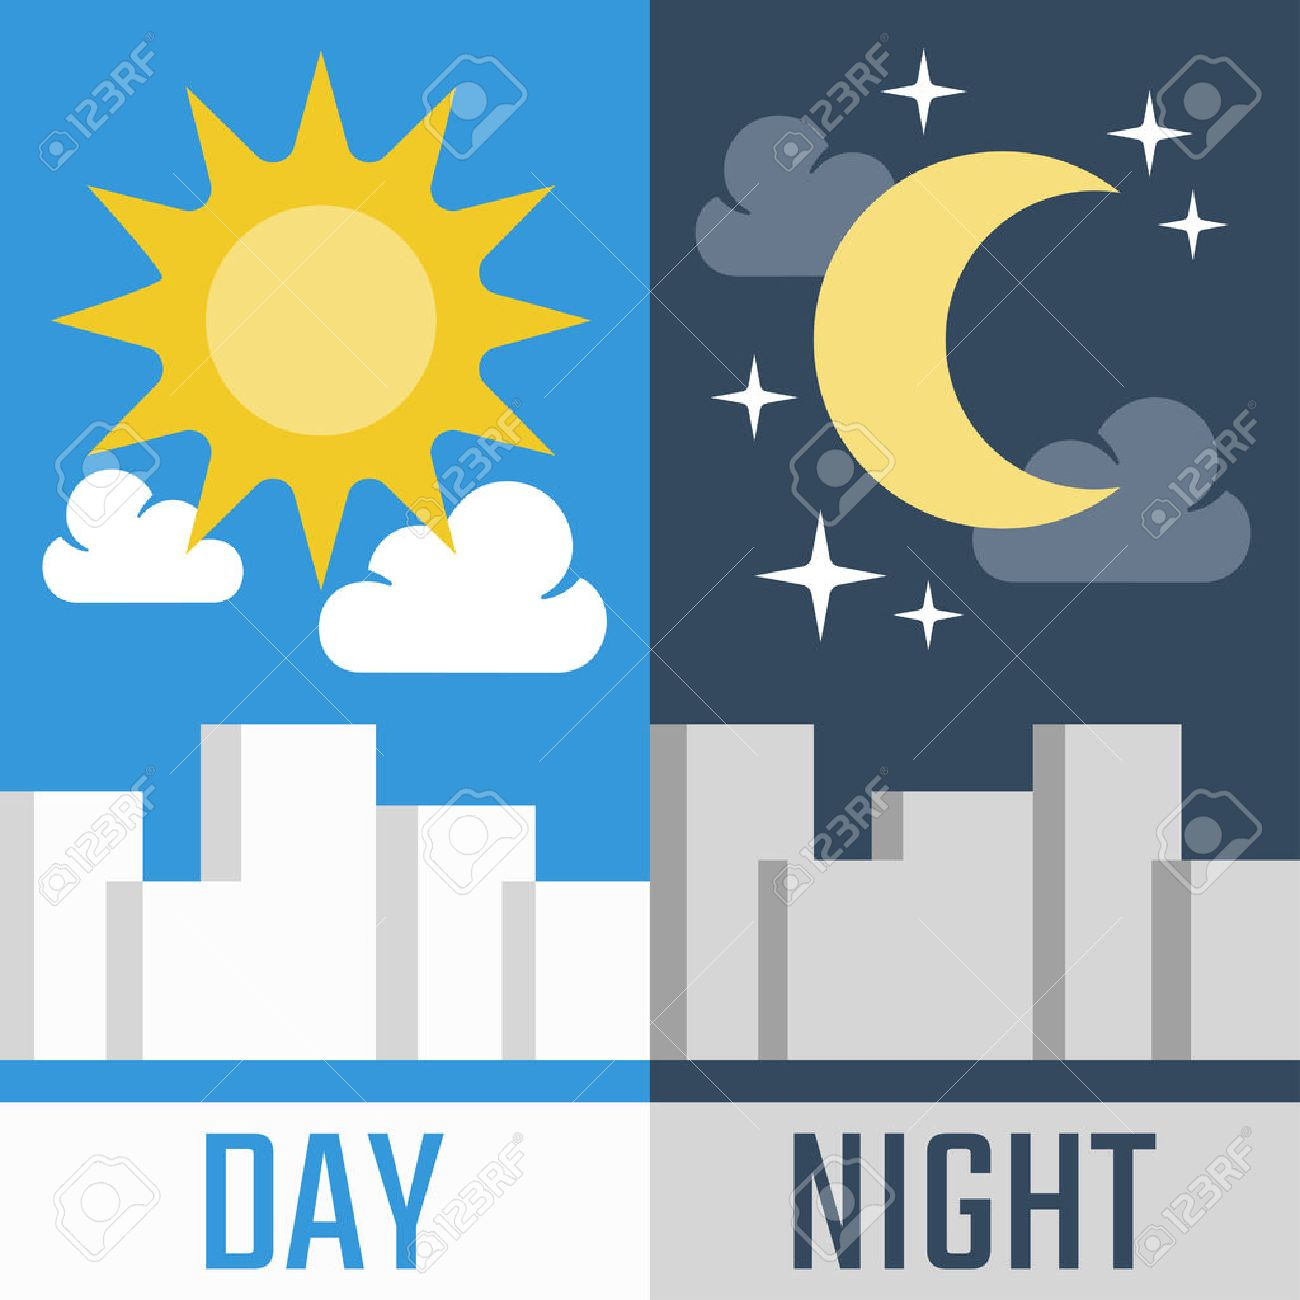 39 084 night and day cliparts stock vector and royalty free night rh 123rf com clipart day of the dead labor day clipart